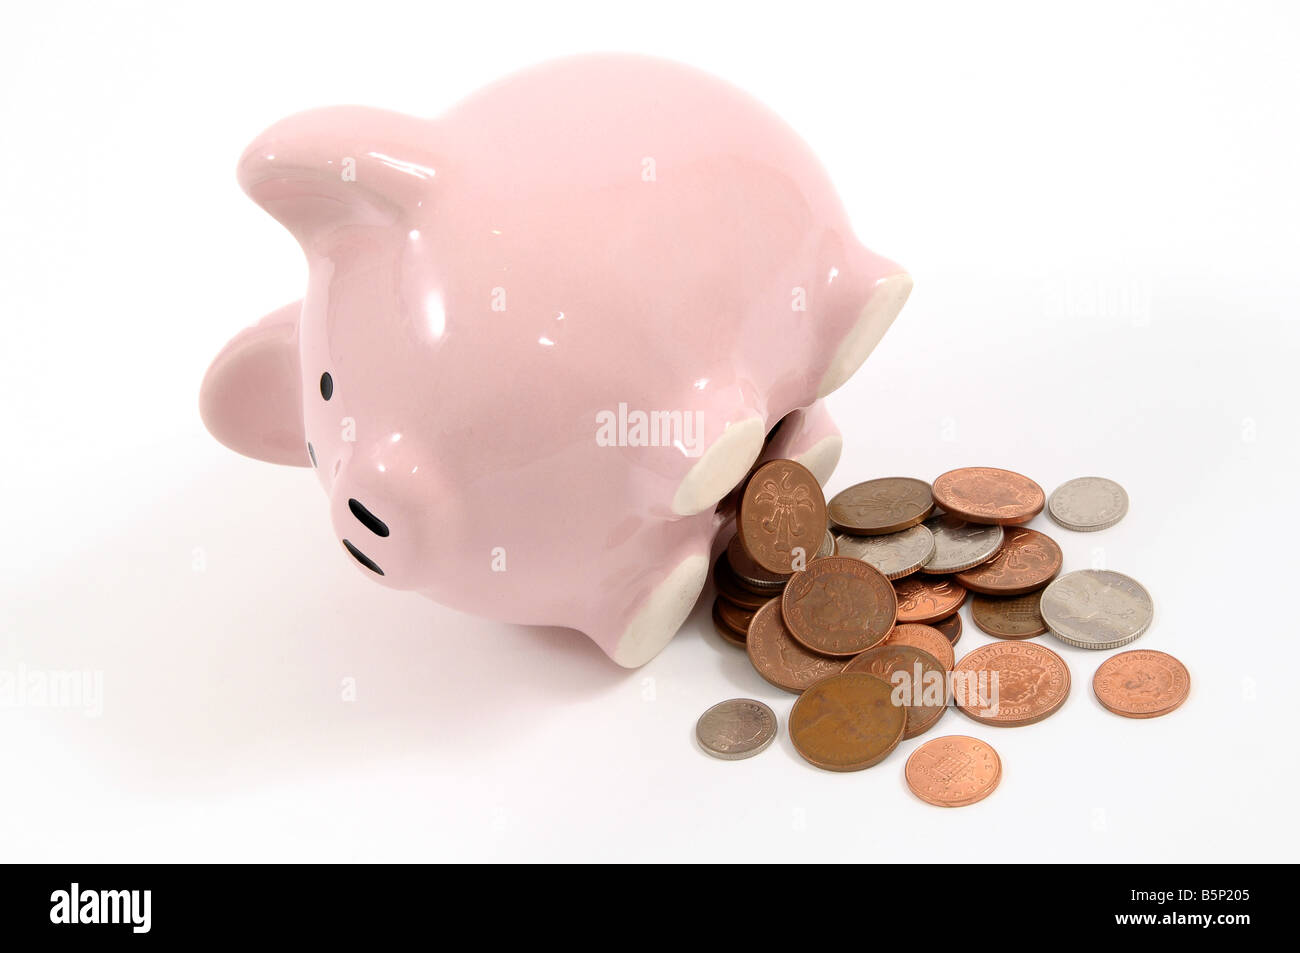 Piggy bank with money coming out - Stock Image